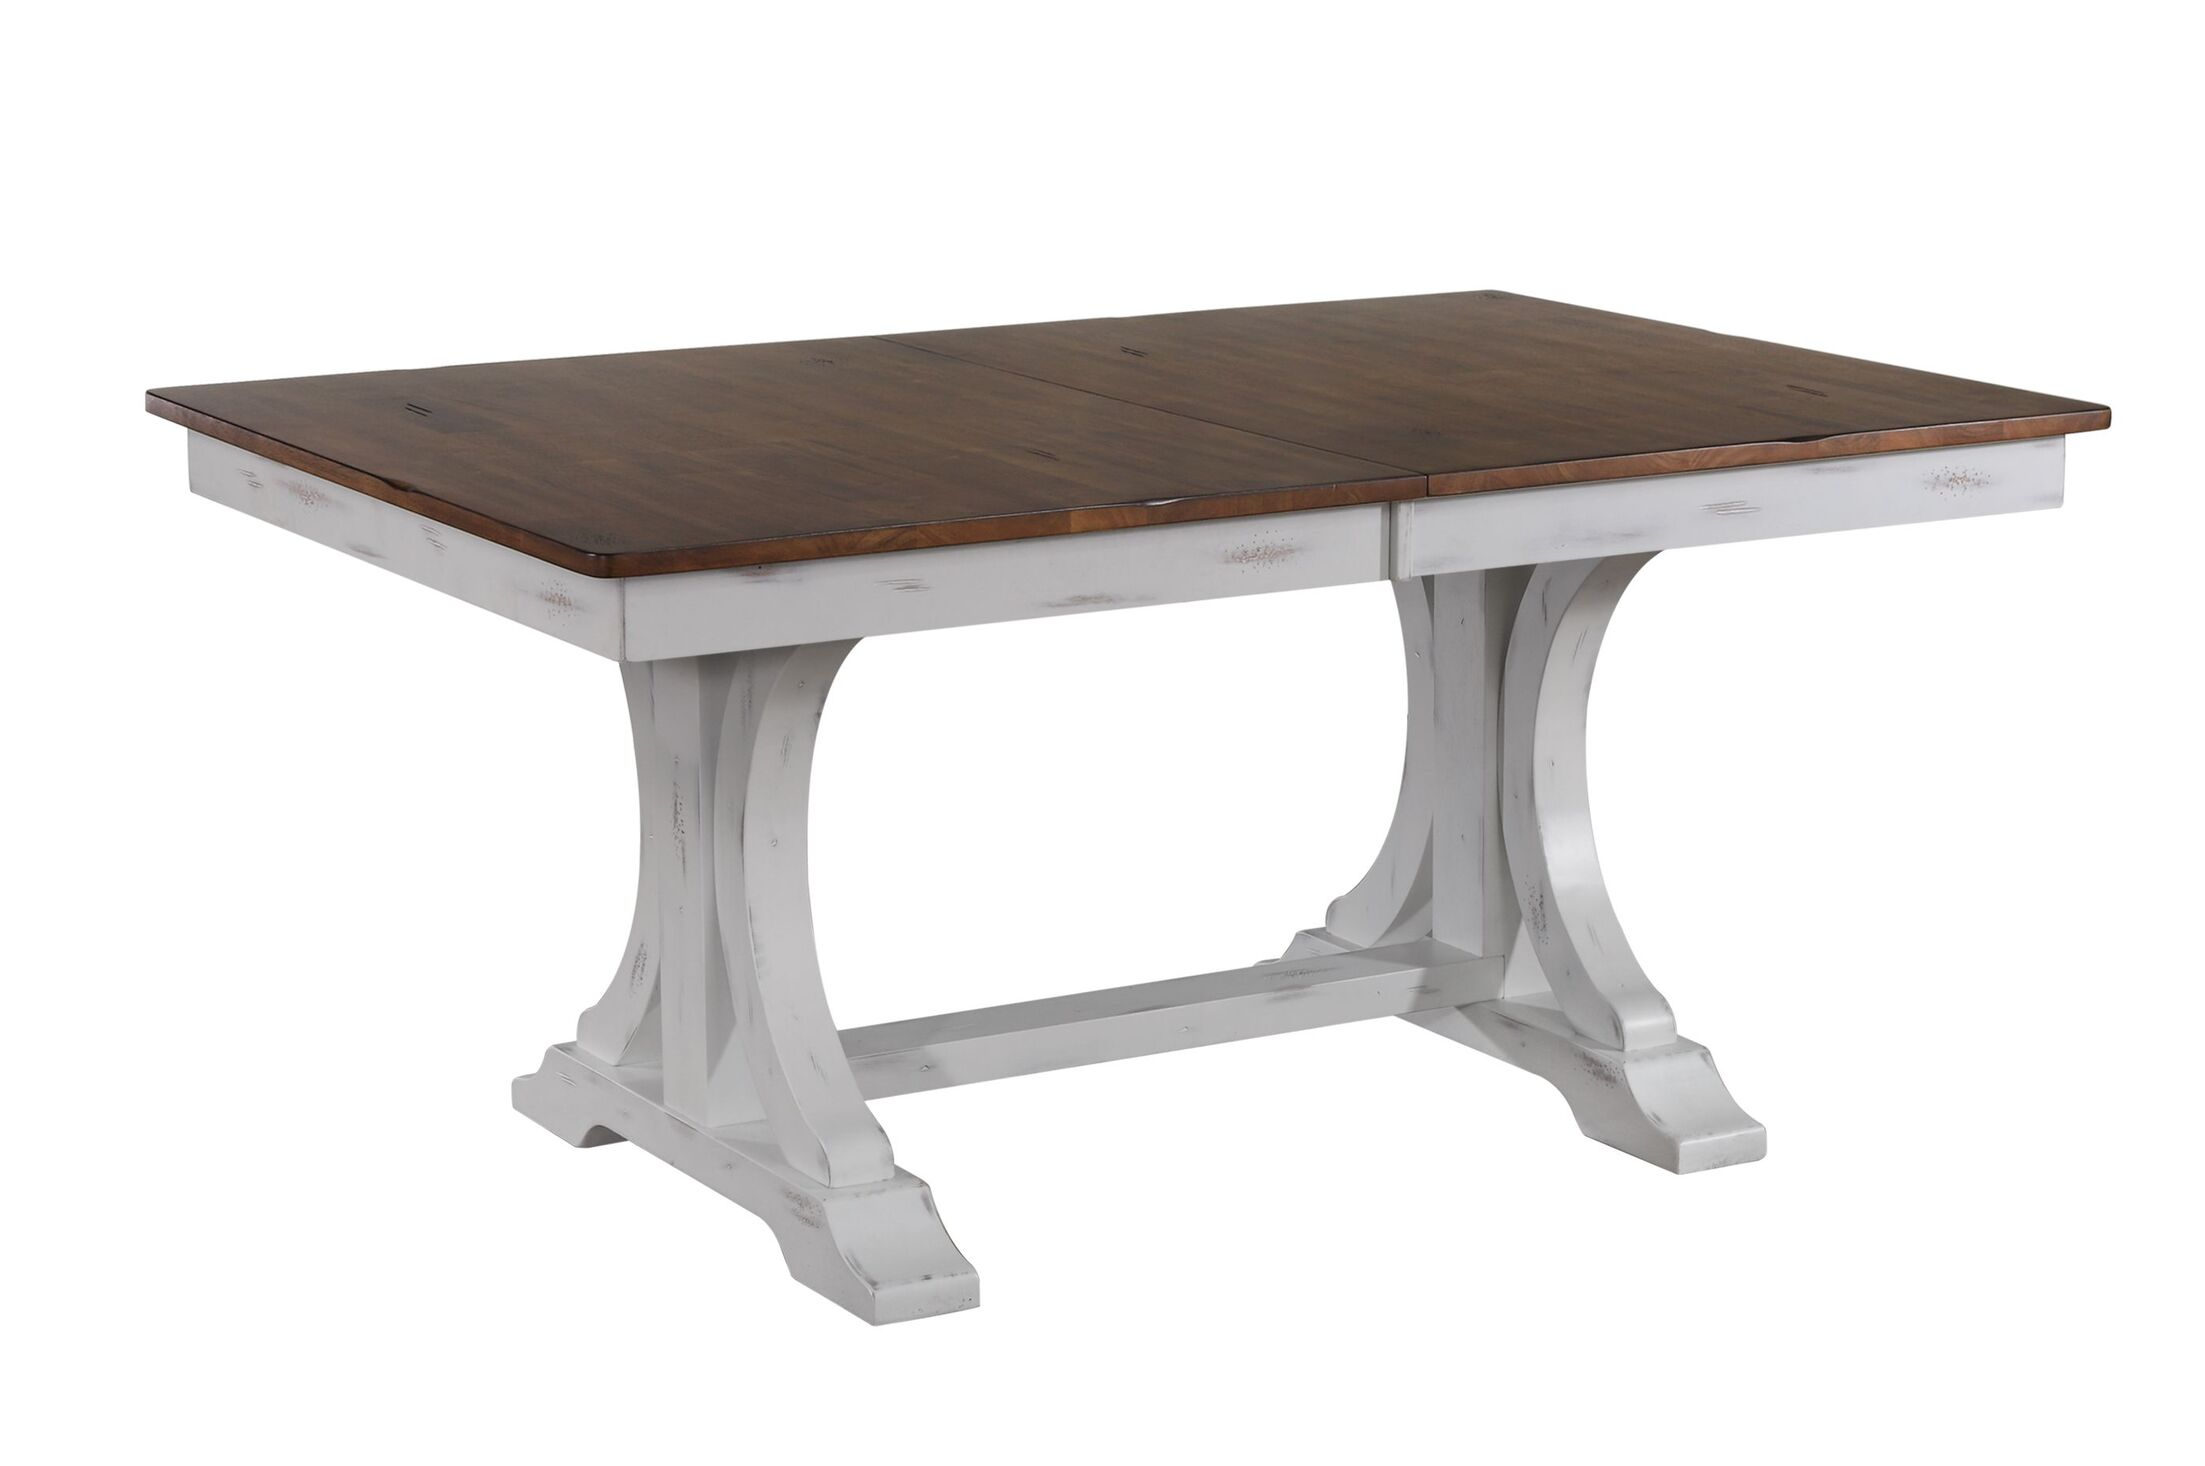 Ramires Extendable Solid Wood Dining Table Finish: Distressed cocoa brown/cotton white